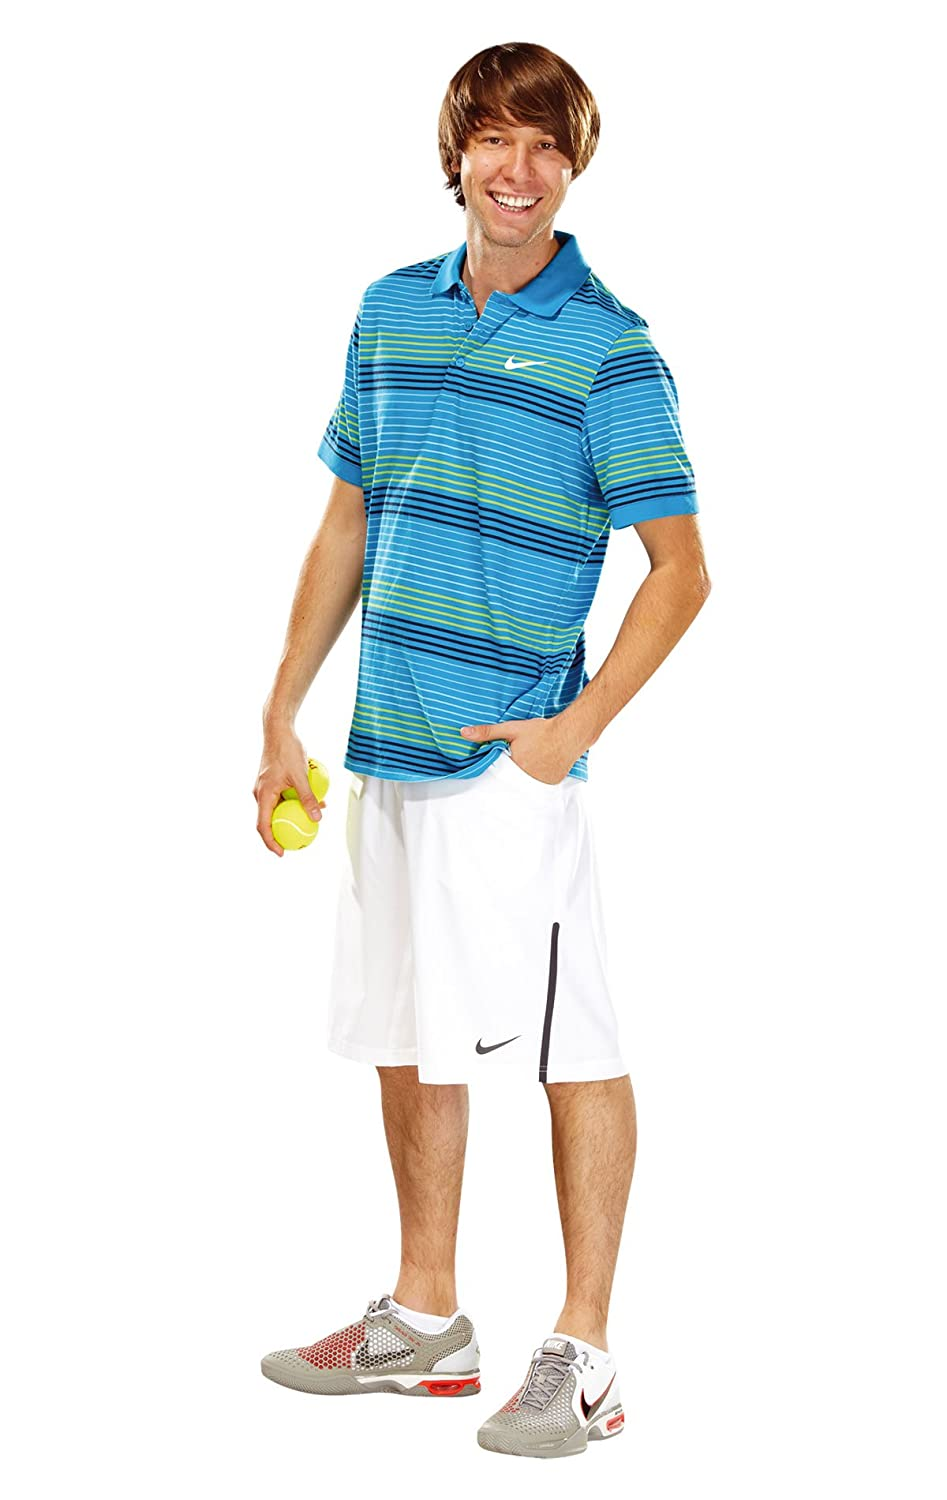 57685b47 Nike Advantage DFCTN Men's Tennis Polo Shirt Striped turquoise heritage  cyan/white Size:M: Amazon.co.uk: Sports & Outdoors